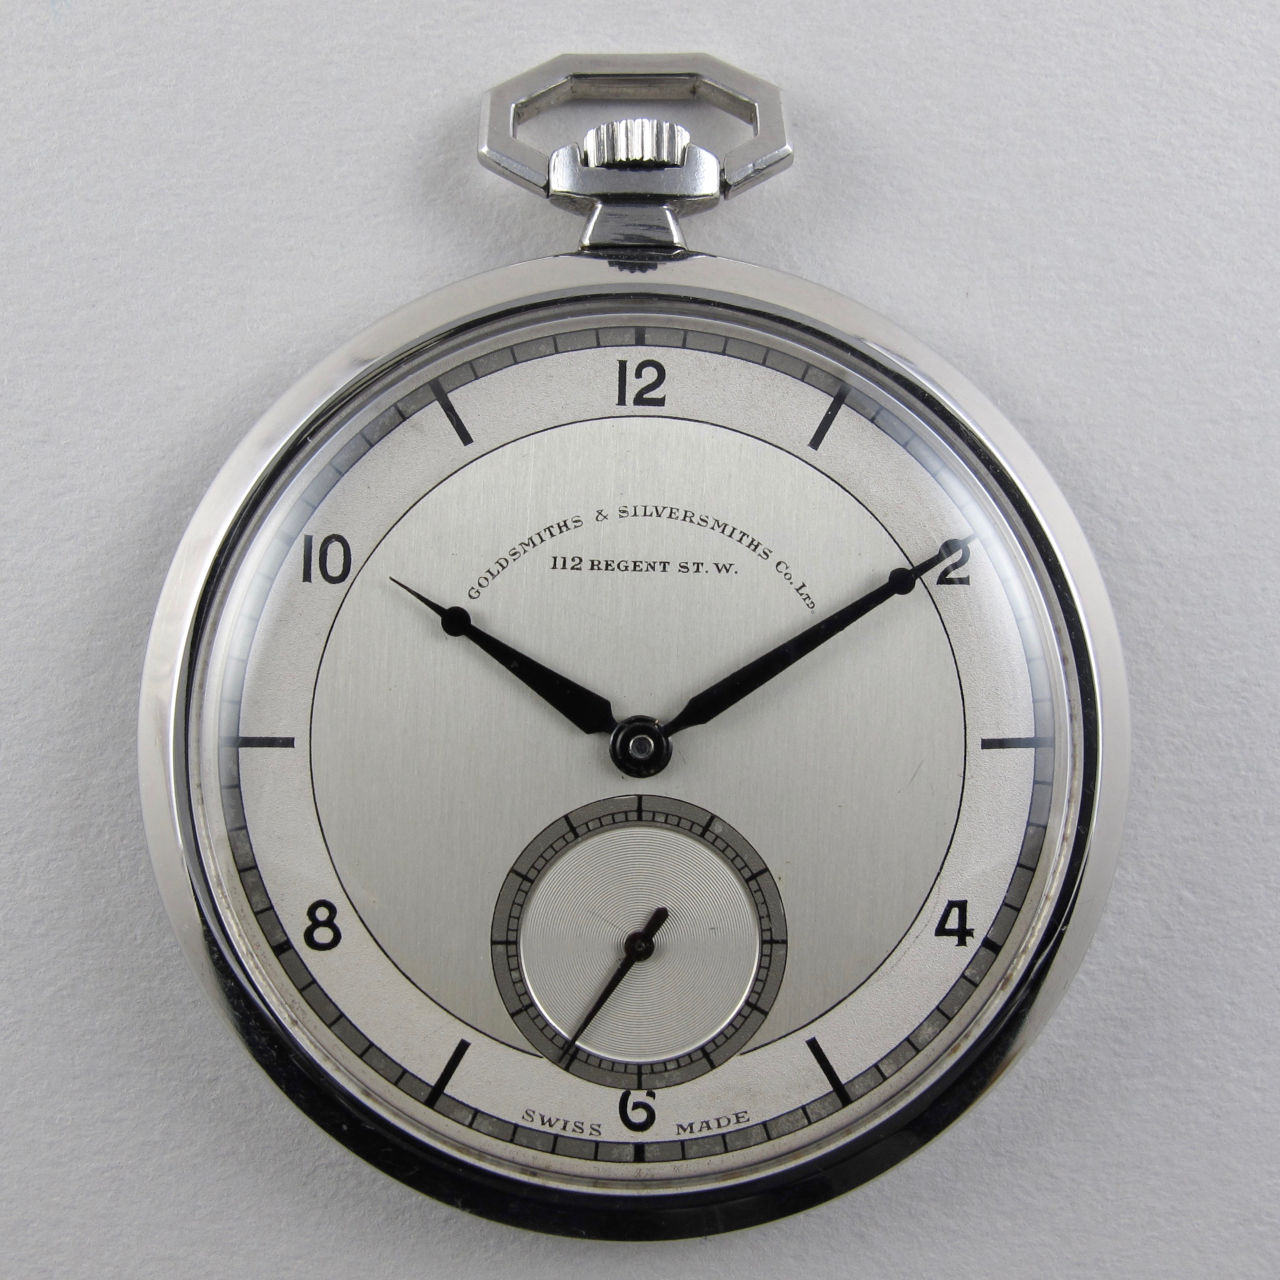 Cyma retailed by Goldsmiths & Silversmiths vintage pocket watch, circa 1940